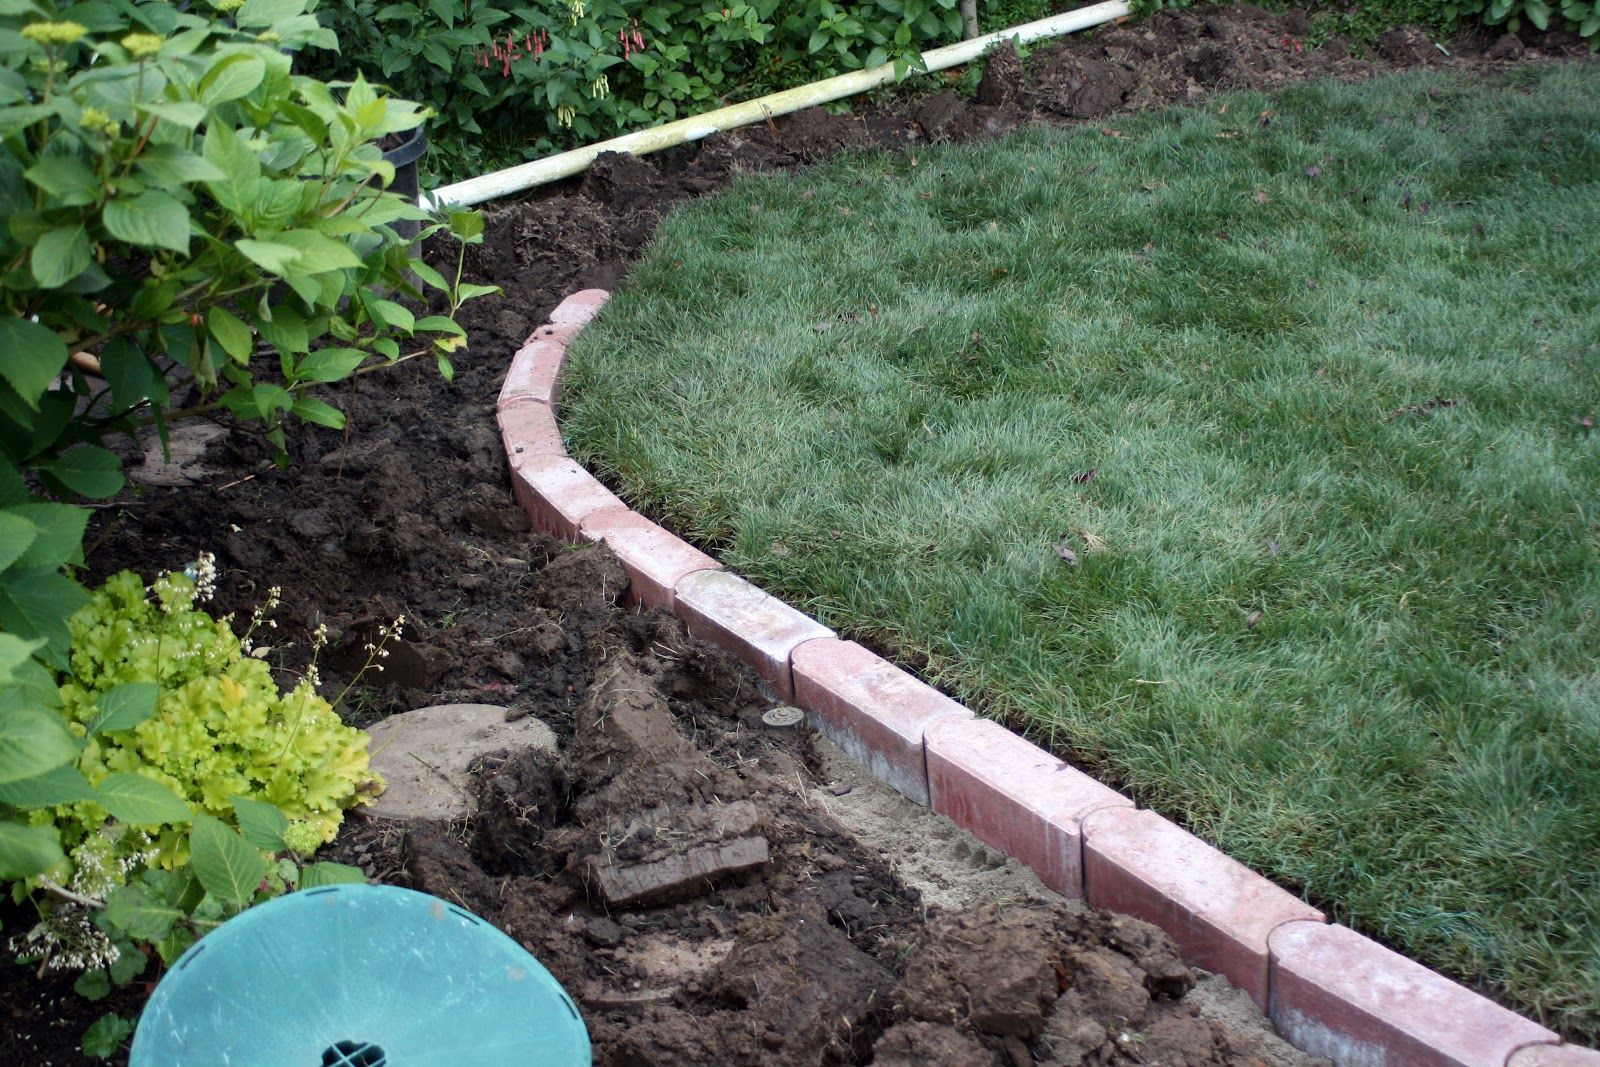 Food and garden dailies brick edging for the lawn for Brick garden edging ideas